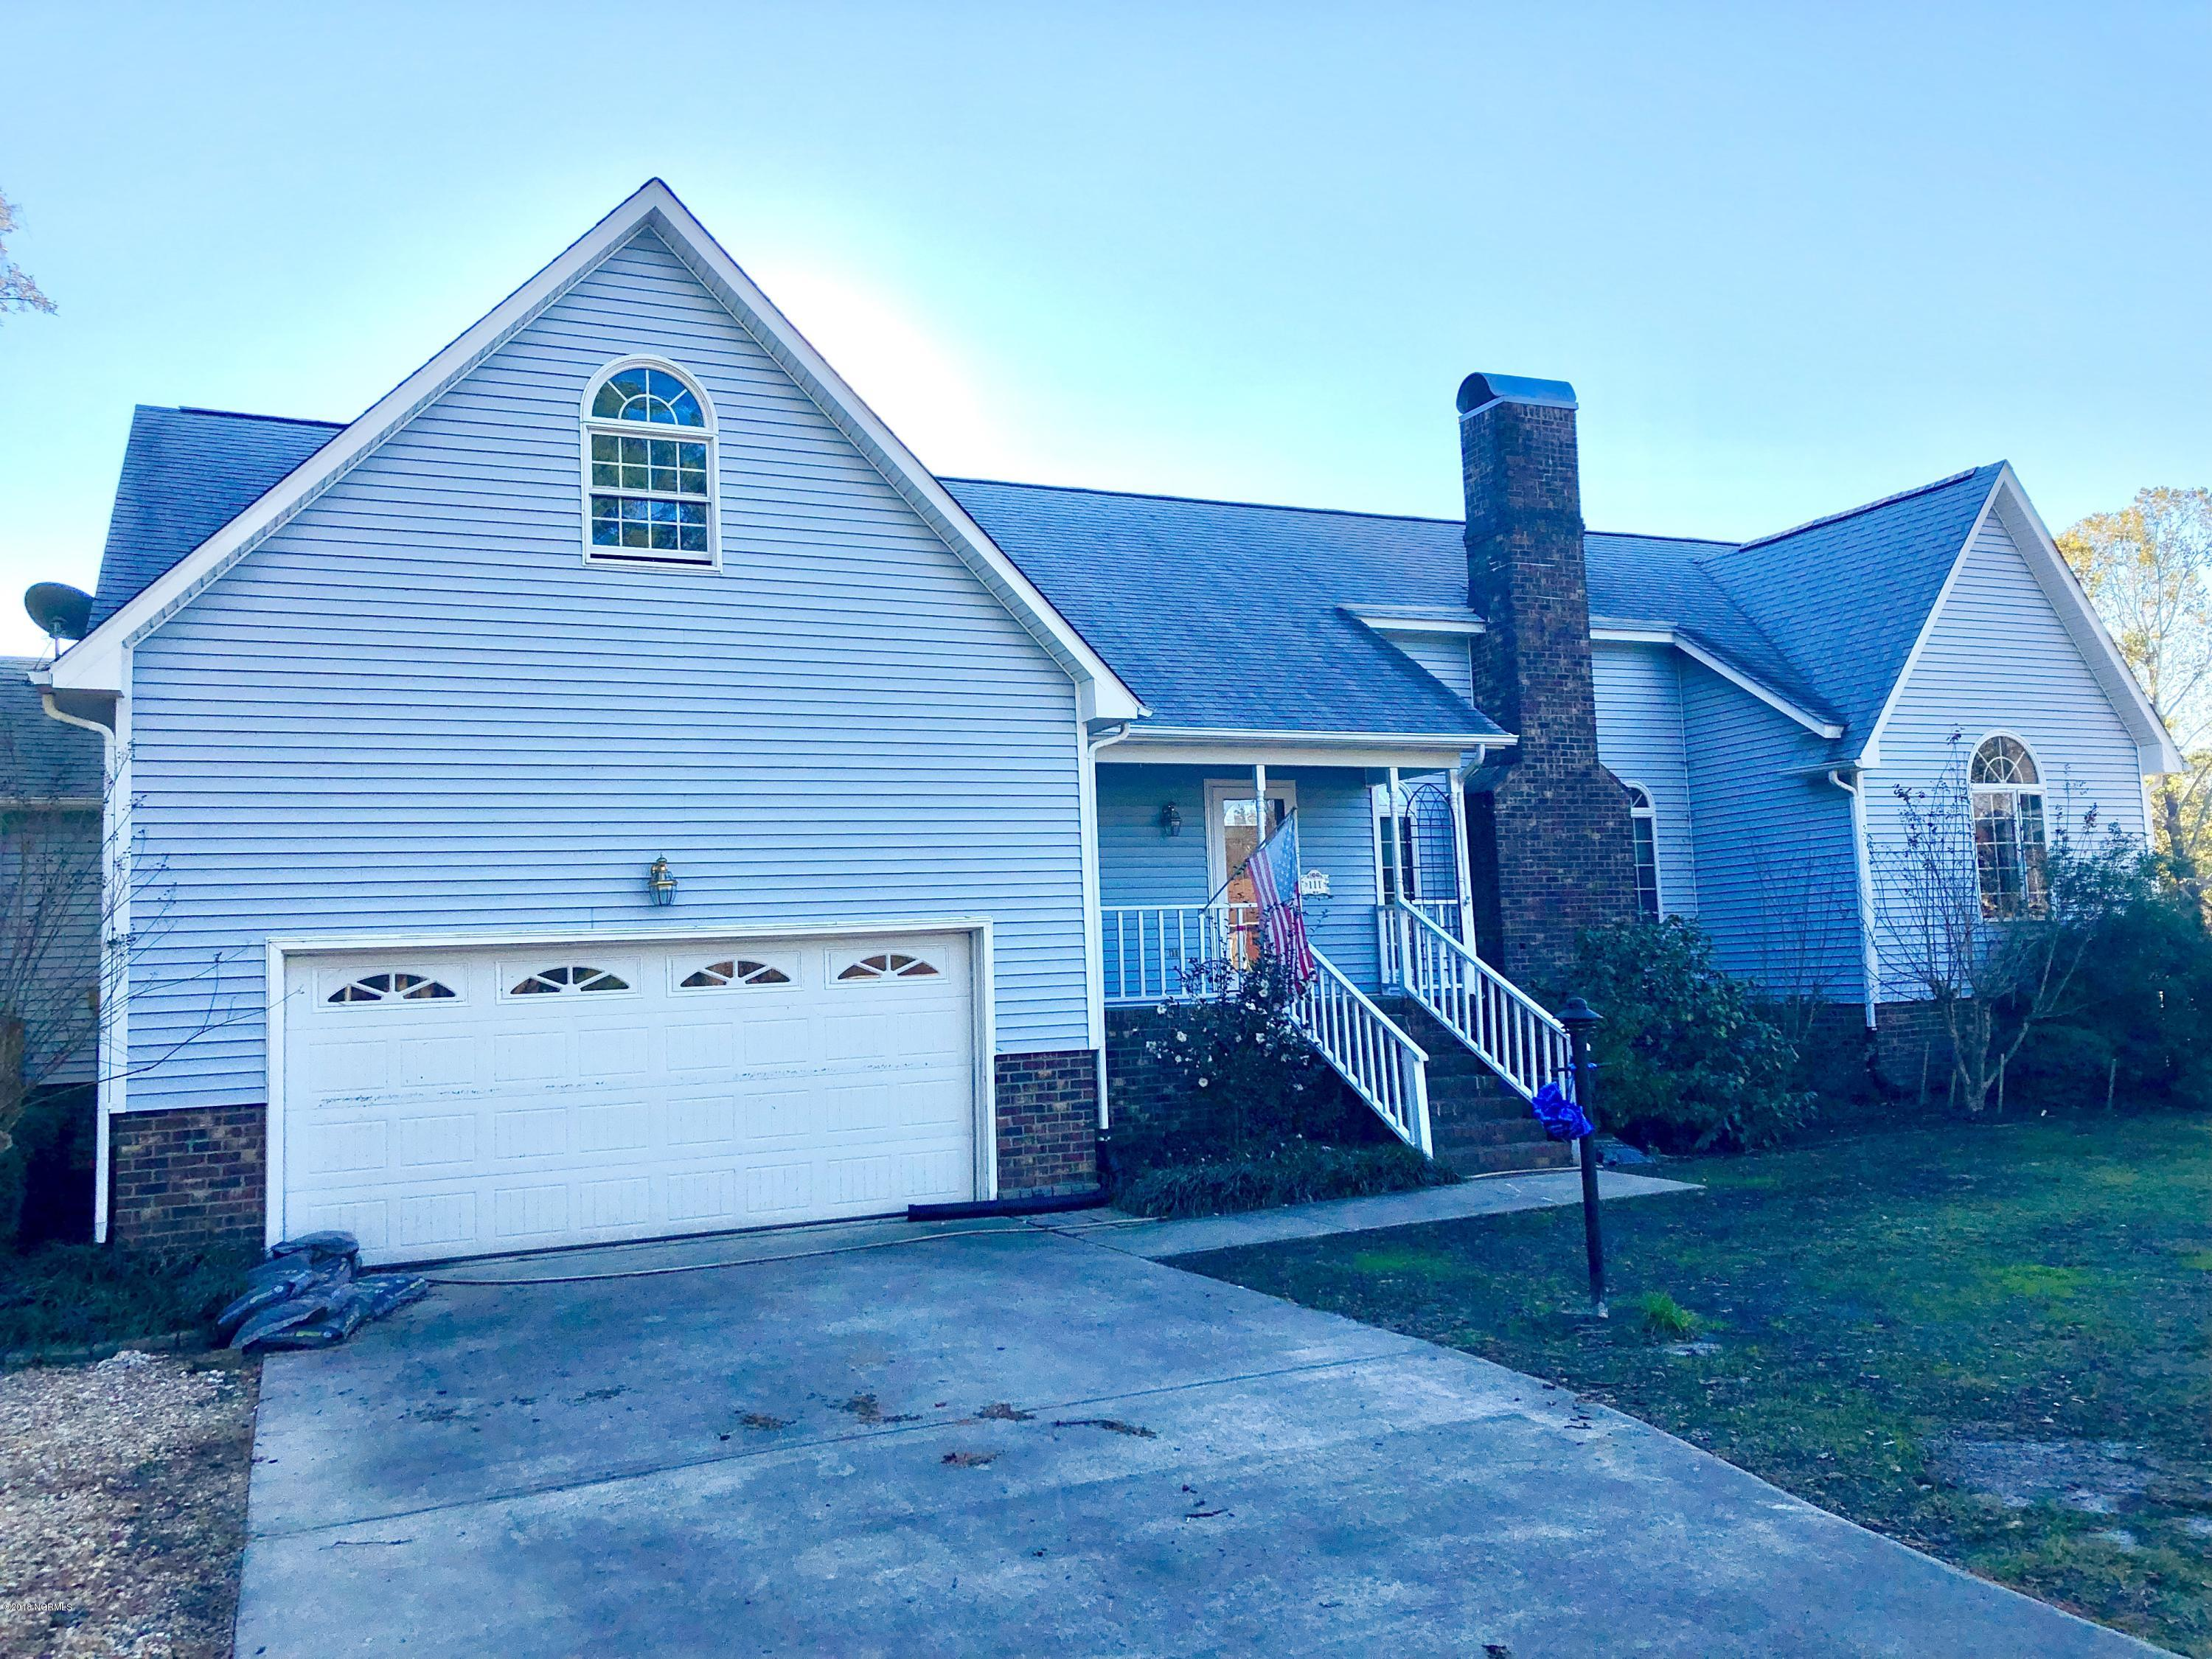 111 Bowline Road Road, New Bern, North Carolina, 3 Bedrooms Bedrooms, 7 Rooms Rooms,2 BathroomsBathrooms,Single family residence,For sale,Bowline Road,100141443